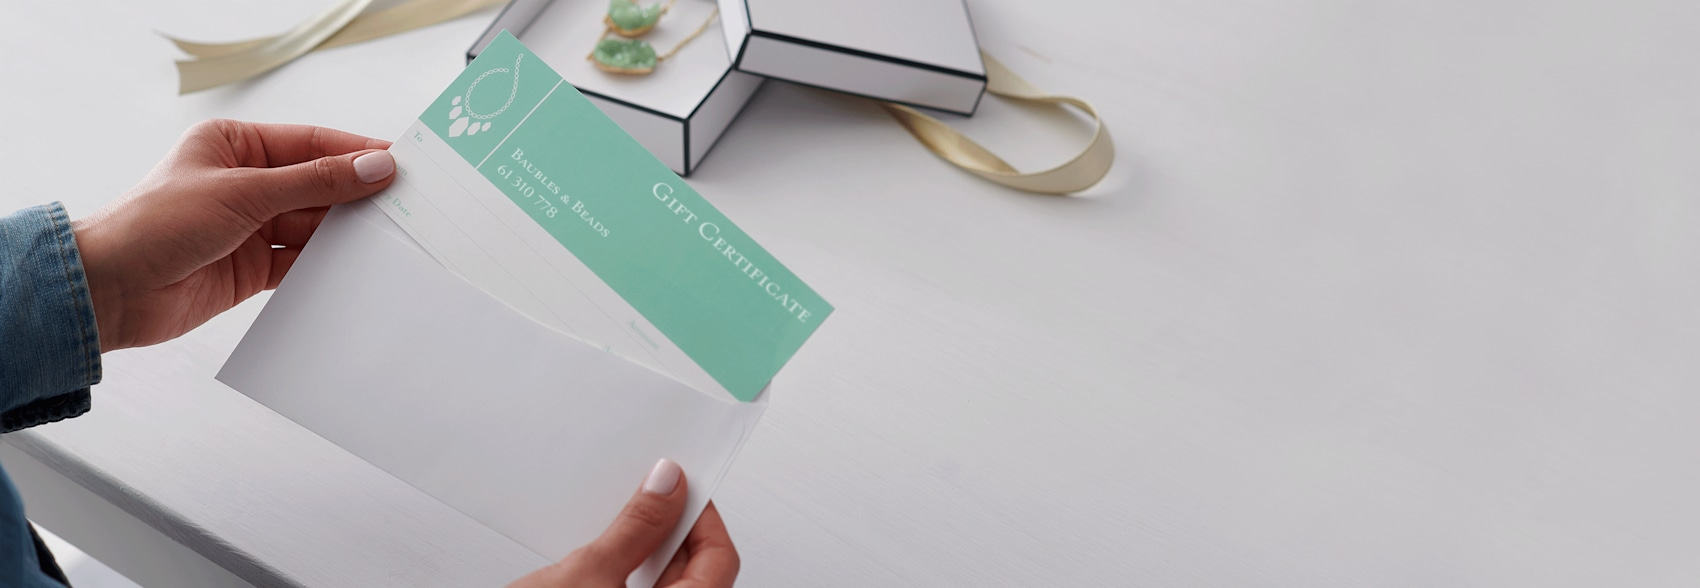 personalised gift voucher with mint colour scheme